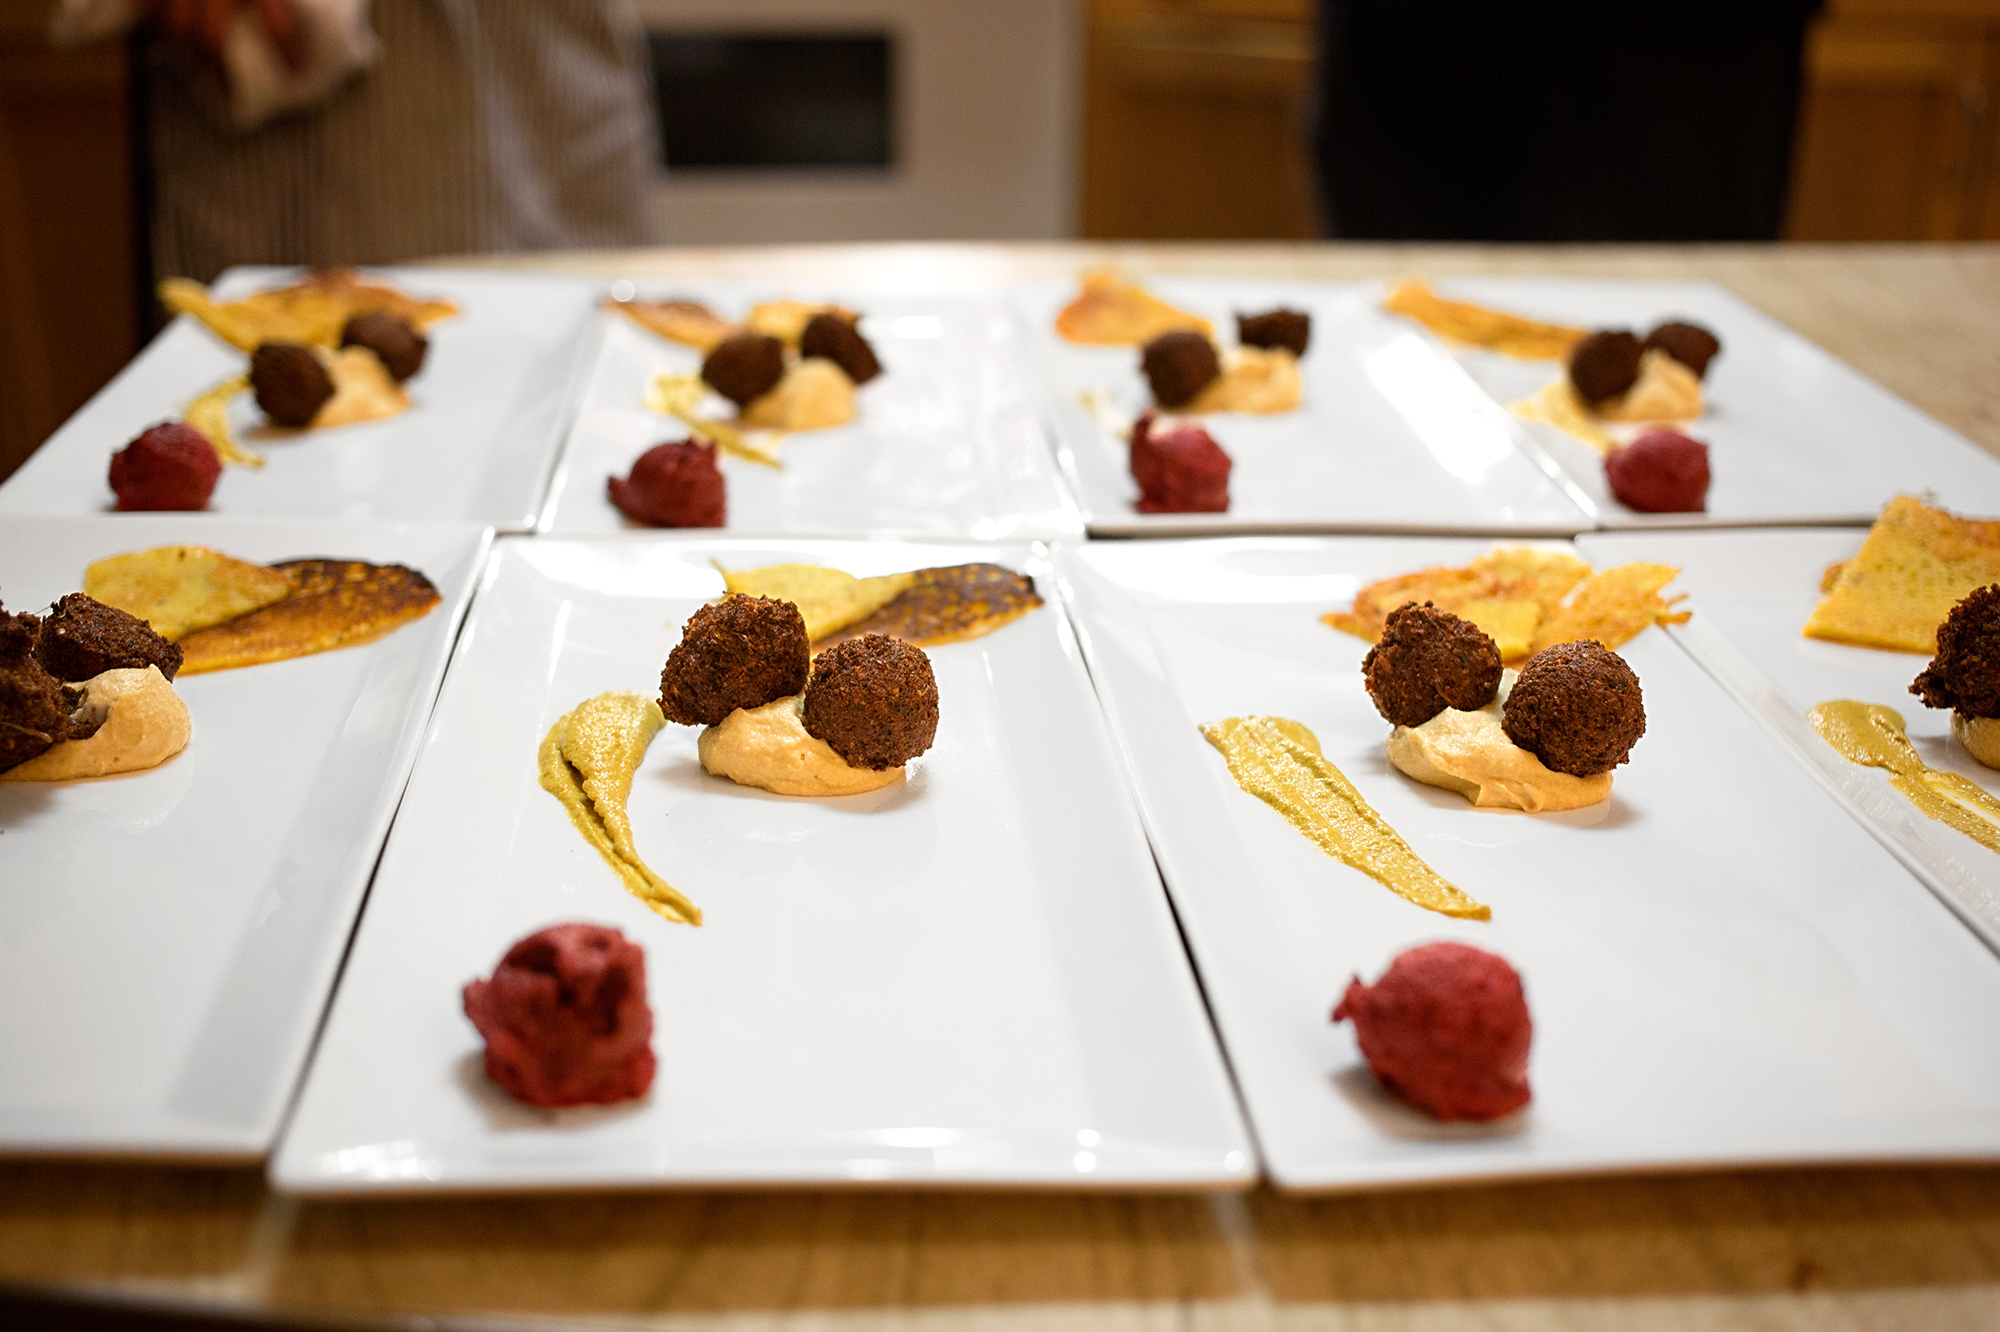 One of musician-turned-chef Philip Gelb's culinary creations for his Sound & Savor series of dinners and concerts. It's a mezze plate of falafel, roasted garlic hummus, beet nut pate, pepper pecan sauce and socca, a thin pancake made of chickpea flour.